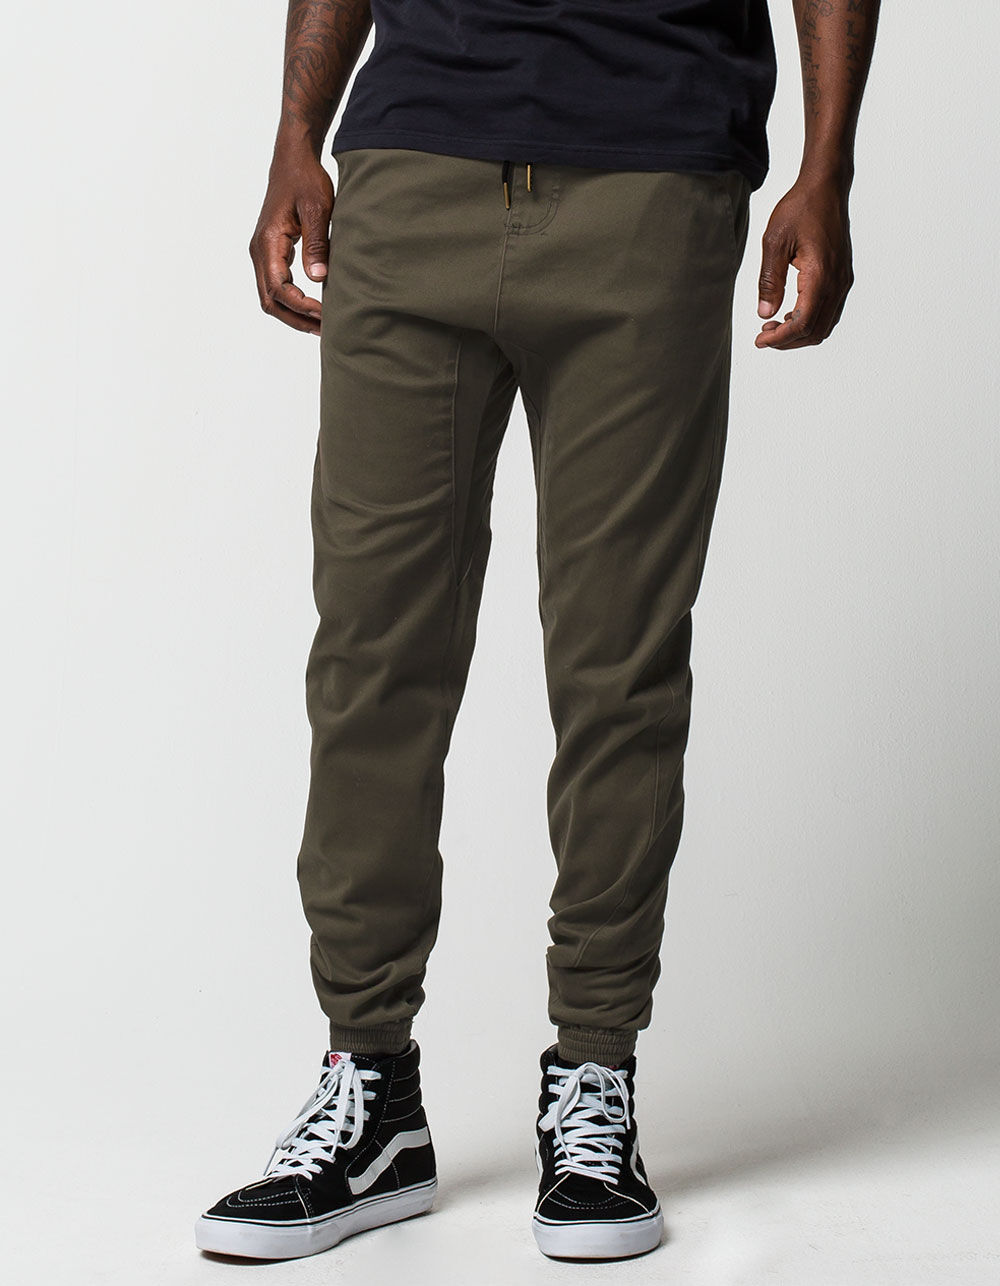 CHARLES AND A HALF Olive Twill Jogger Pants